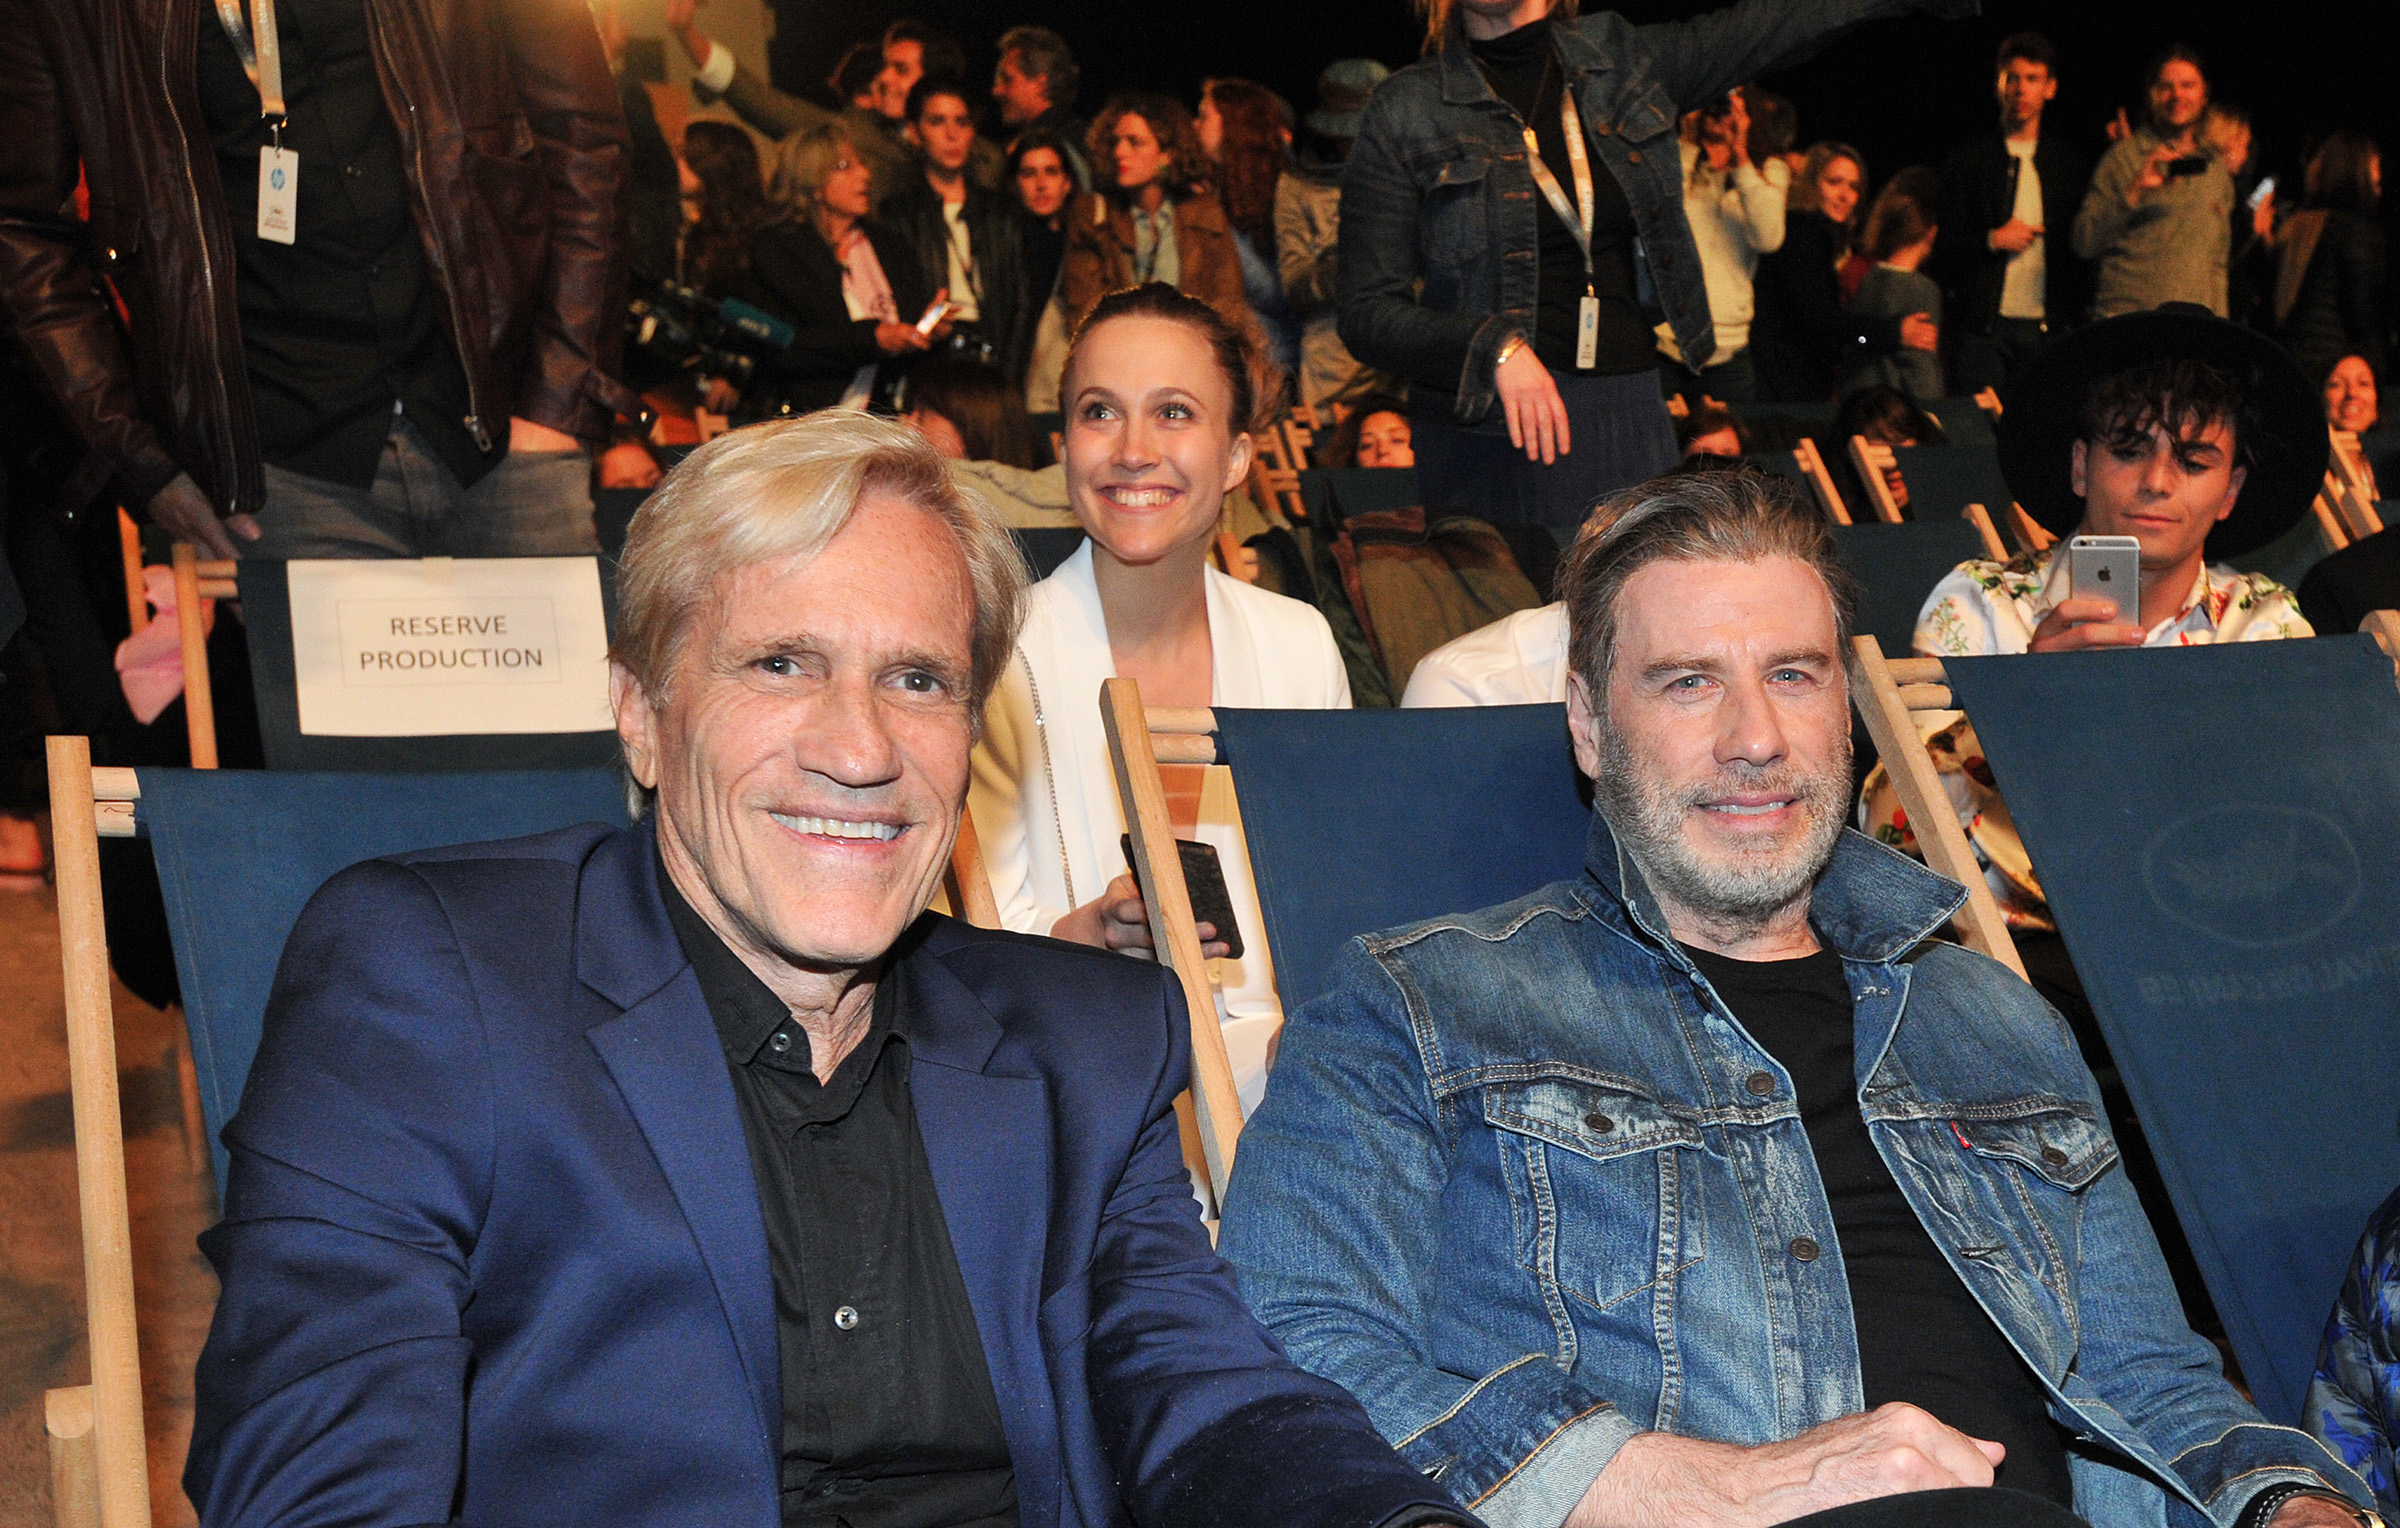 John Travolta and Randal Kleiser at an event for Grease (1978)